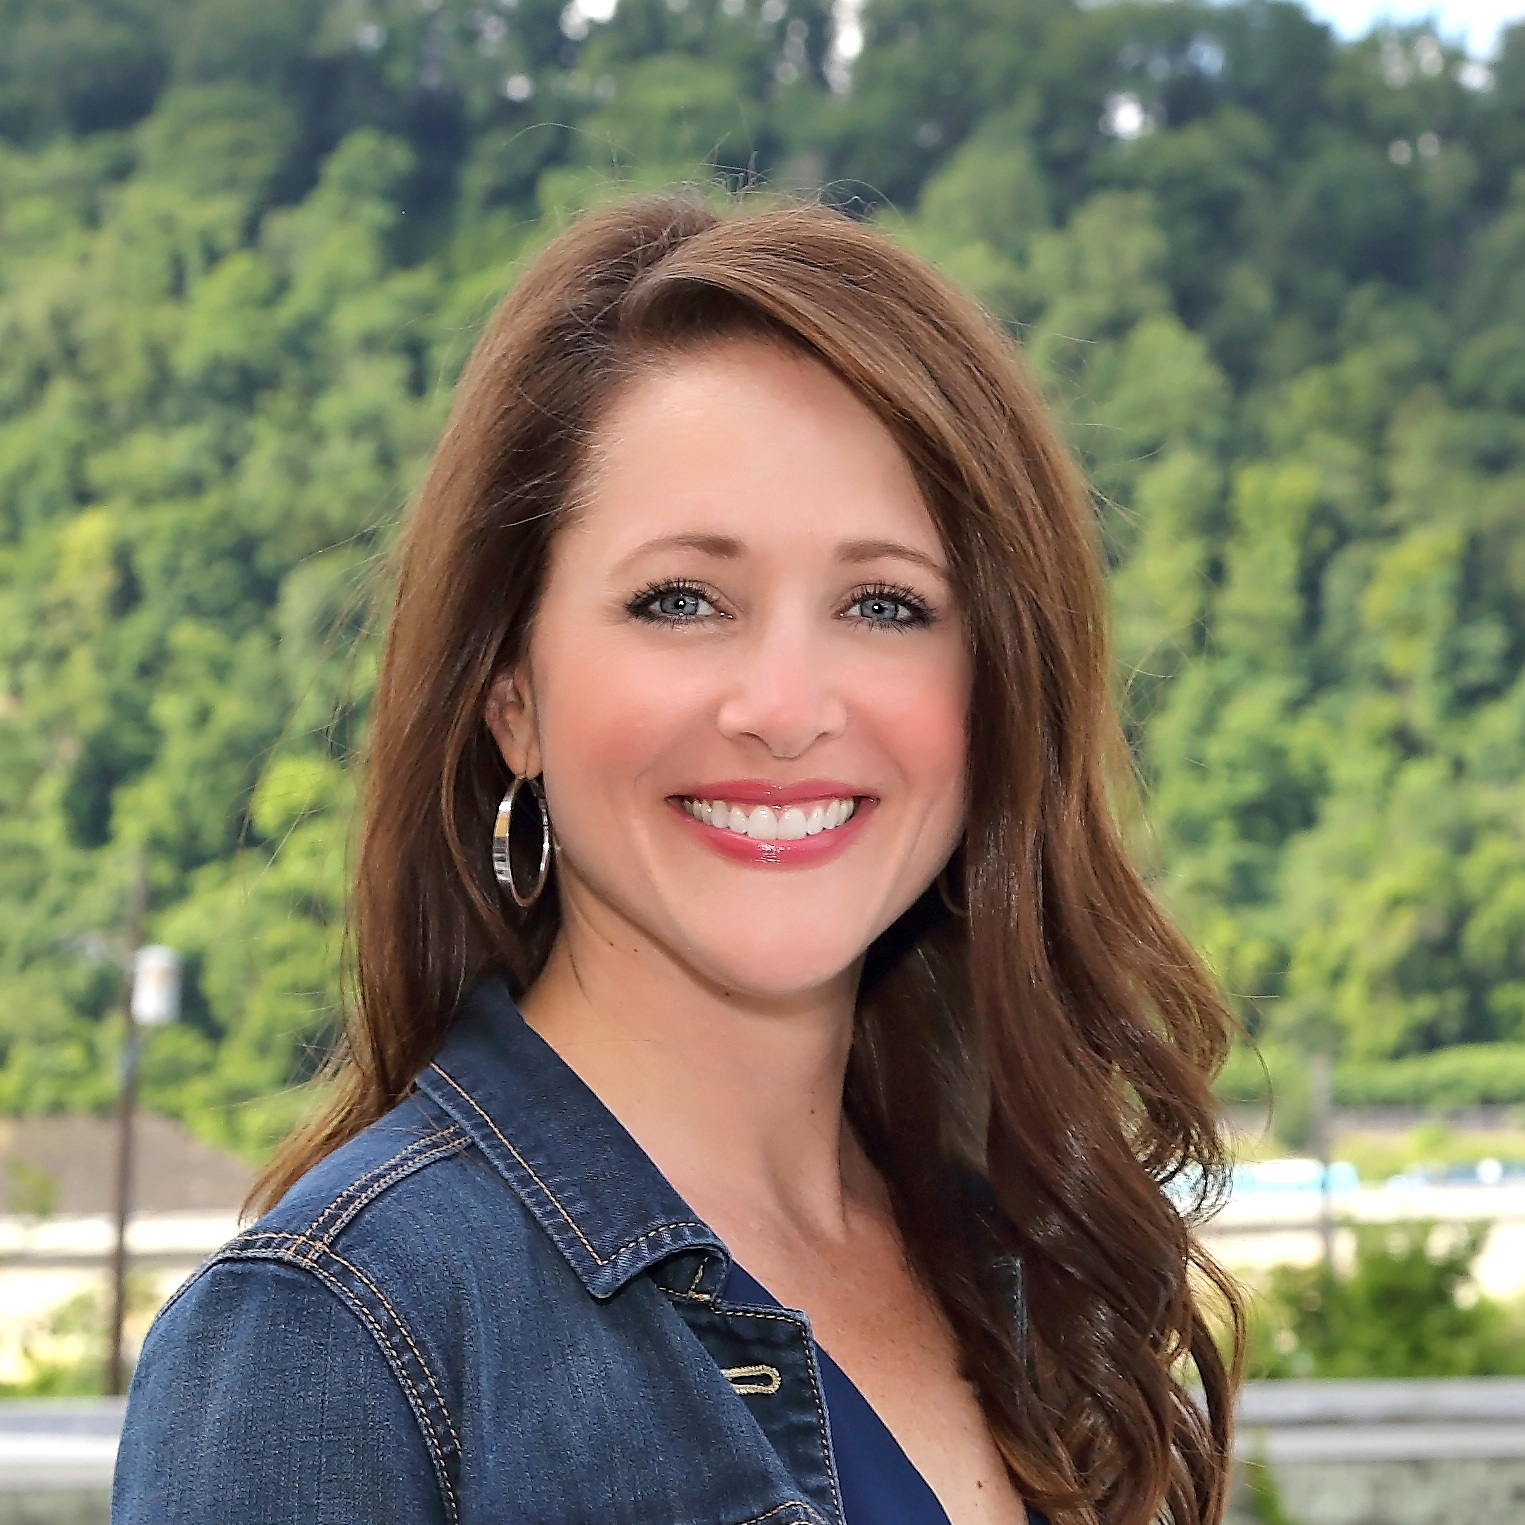 """Christy L. Boehm    Vice President of Operations   Christy joined Scott at the start of BXBenefits in September 2006. She holds 20 years of experience and is responsible for the Operations of BXBenefits. Christy continues to maintain client relationships, carrier relationships, and handles all aspects of marketing and client communications. She developed the ERISA Compliance Services; she oversees the implementation for all """"new"""" initiatives and manages the personnel. Christy currently holds her Life/Accident Health License in the state of PA, OH and Tennessee; she also maintains the Individual FFM Certification."""